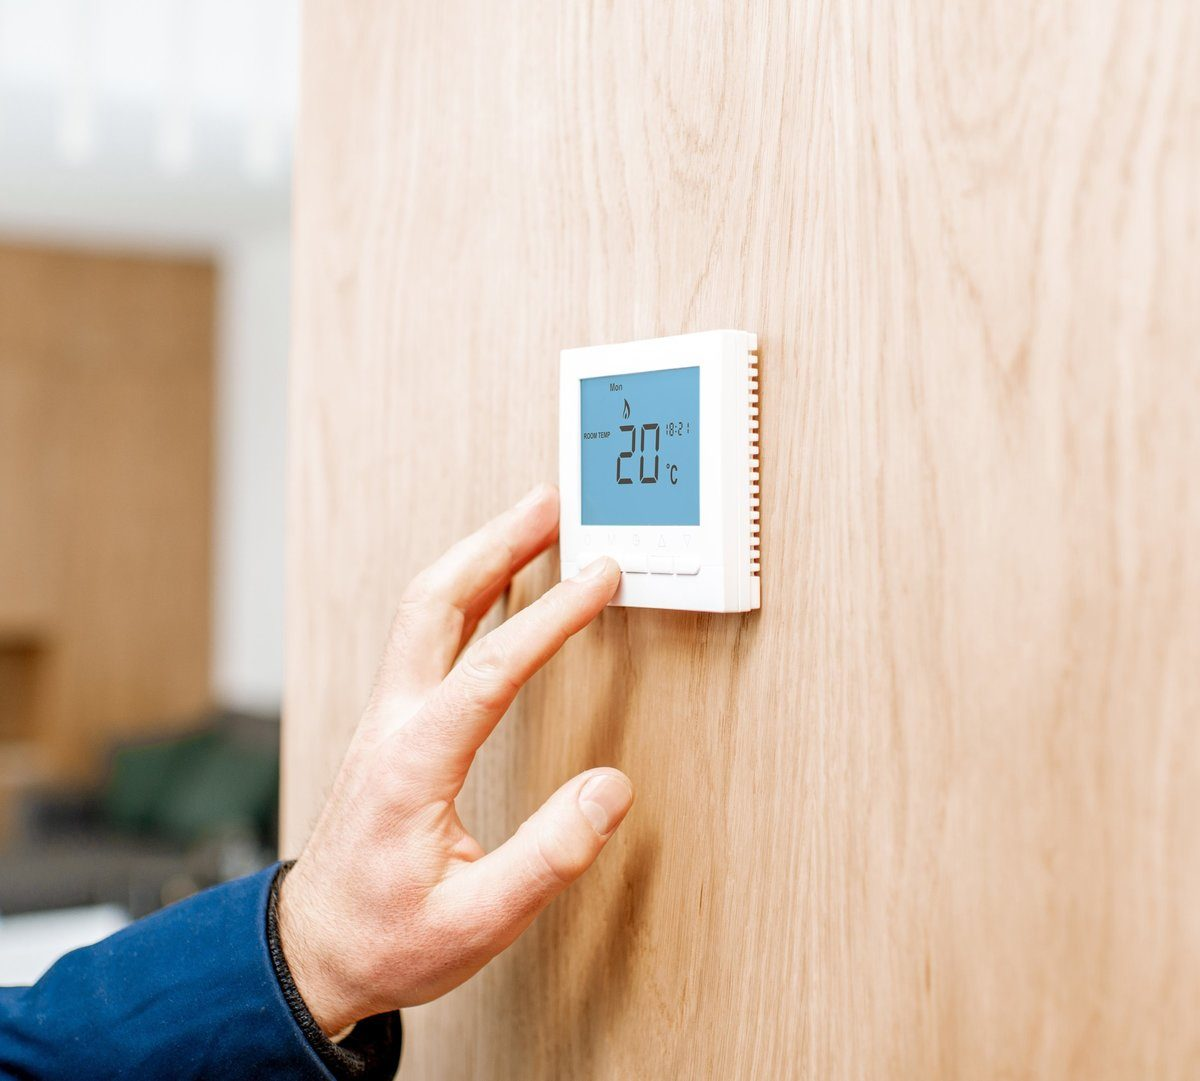 Manual thermostat installed on a wooden wall